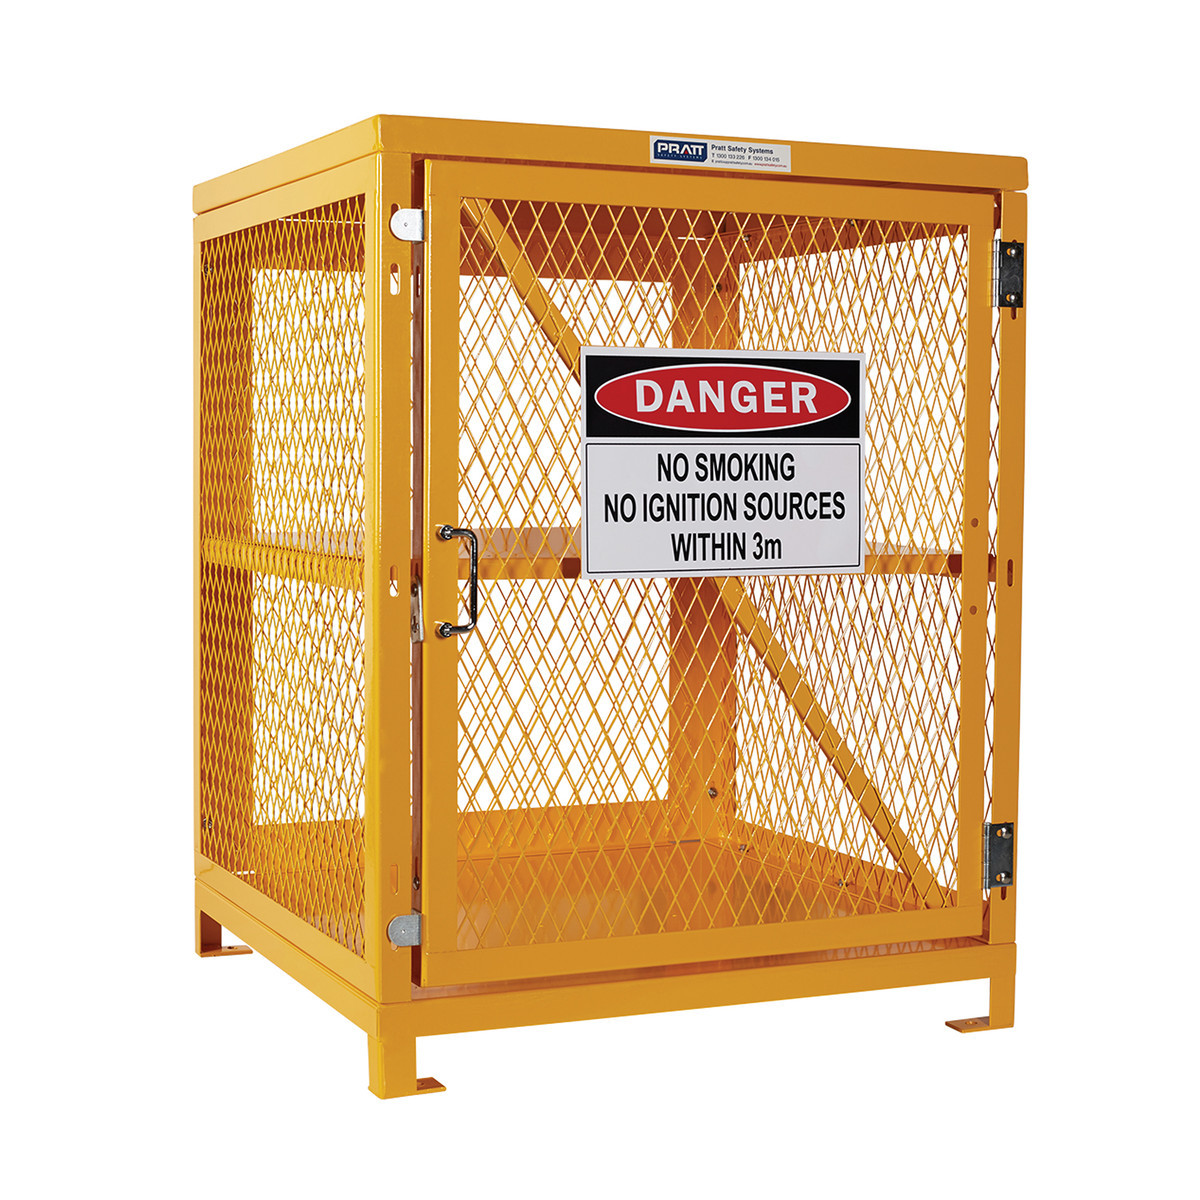 Flat Packed Aerosol Storage Cage - 2 Storage Levels Up To 200 Cans